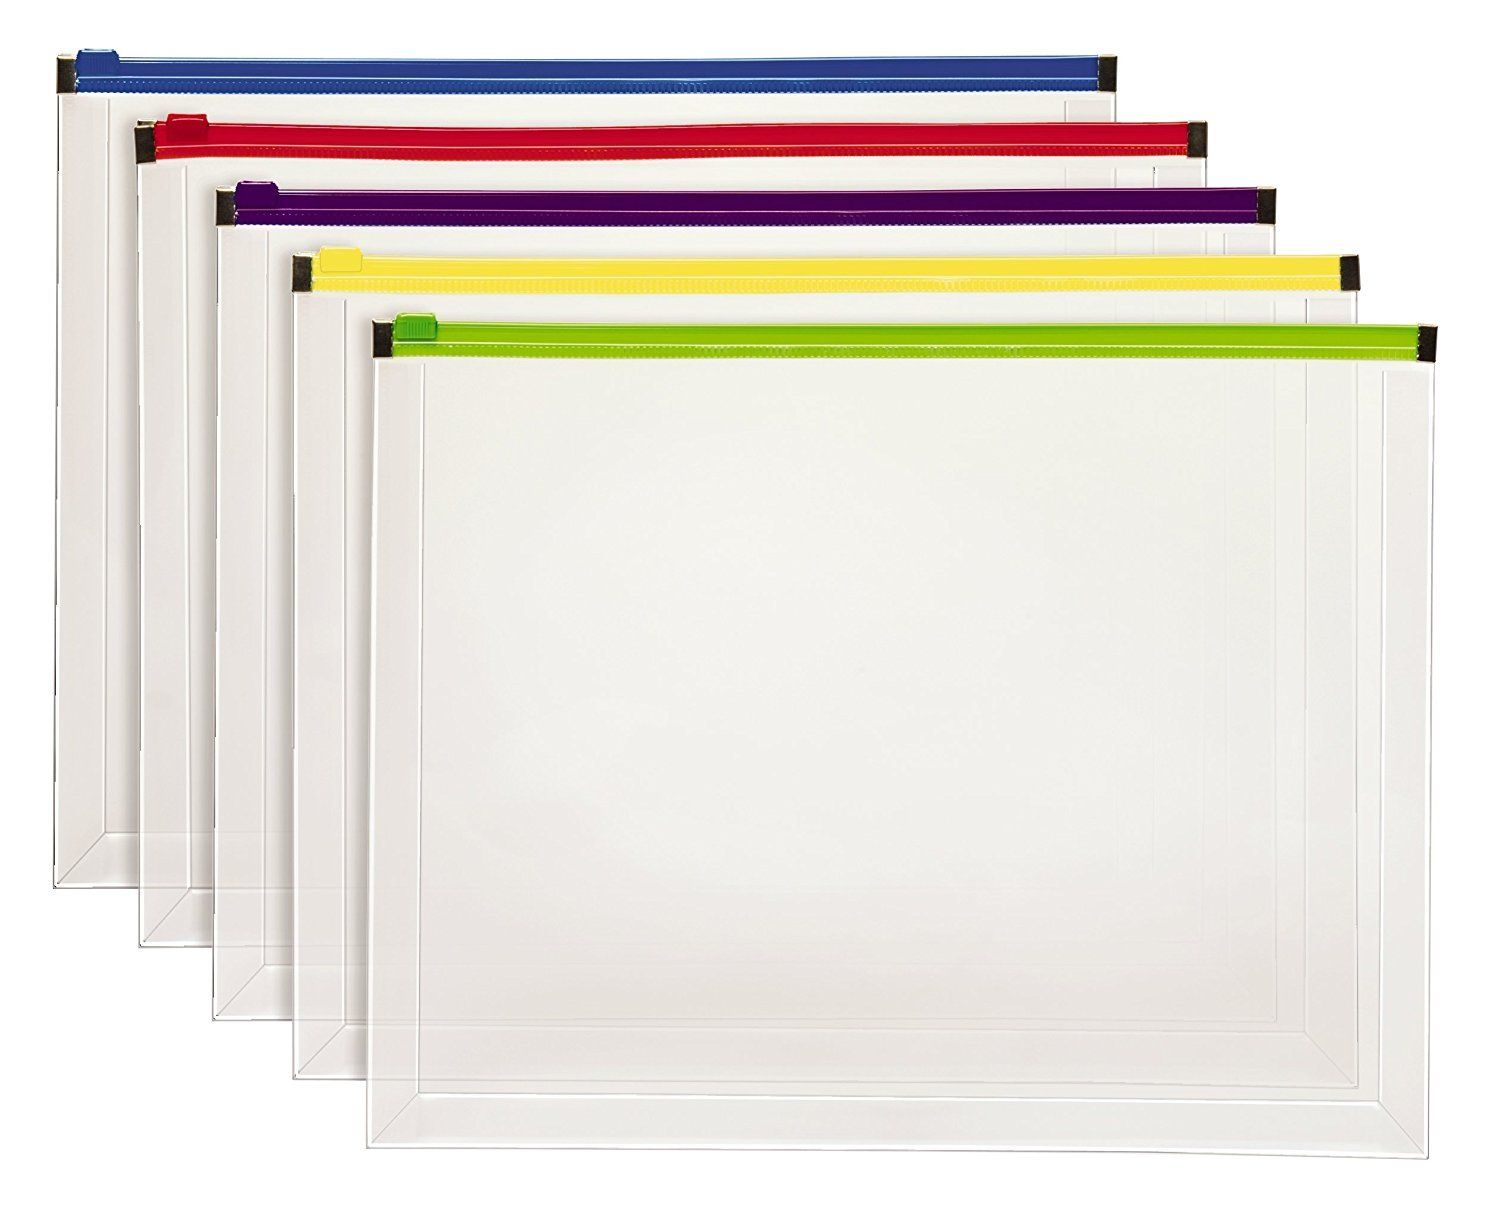 Pendaflex Poly Zip Envelope, Letter Size, Assorted Color Zippers, 5 per Pack 2-Pack by Pendaflex